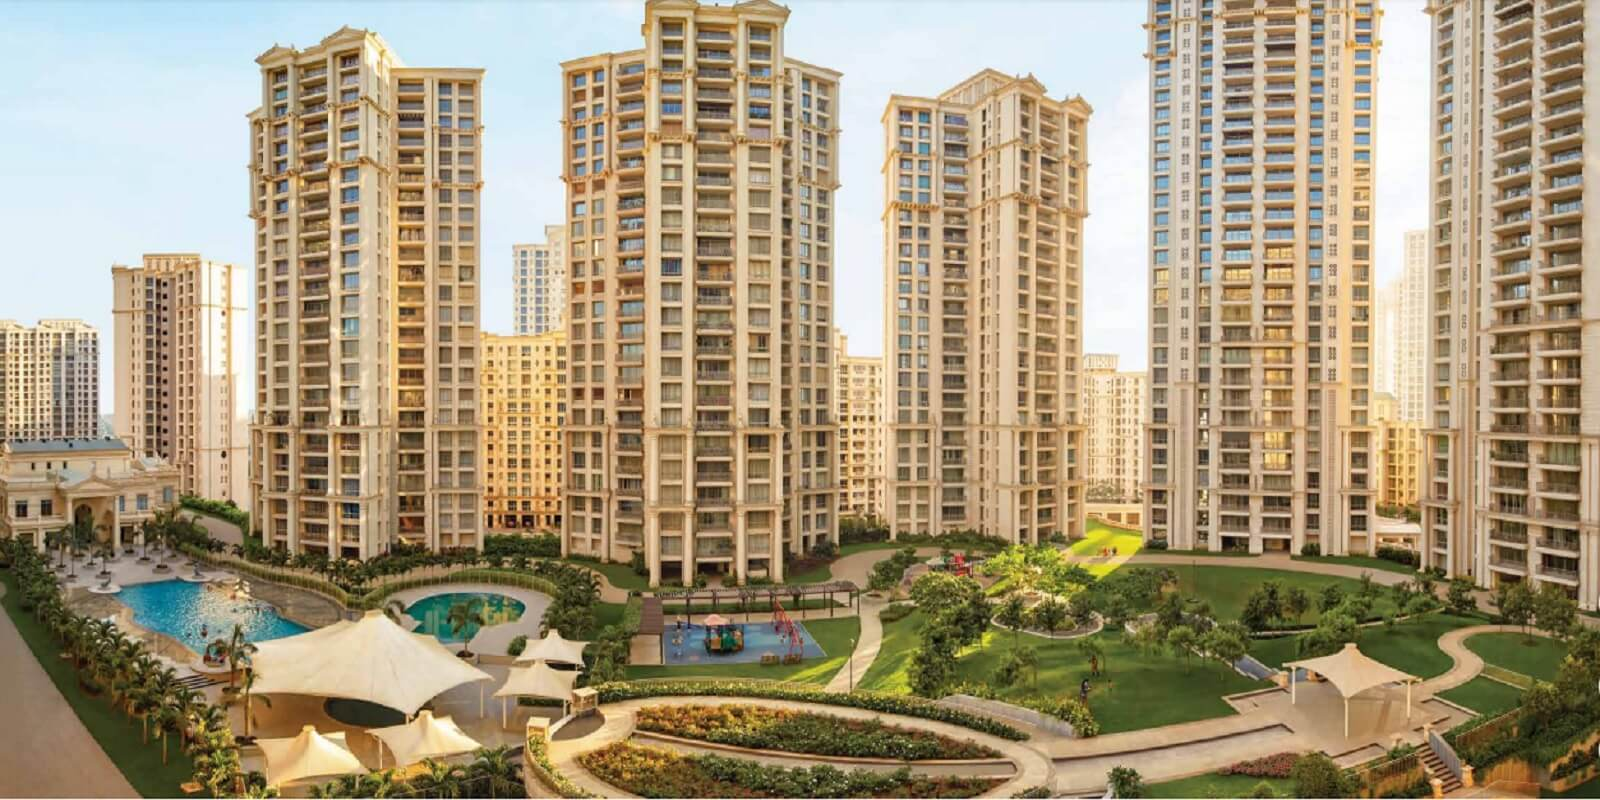 hiranandani estate rodas enclave project large image1